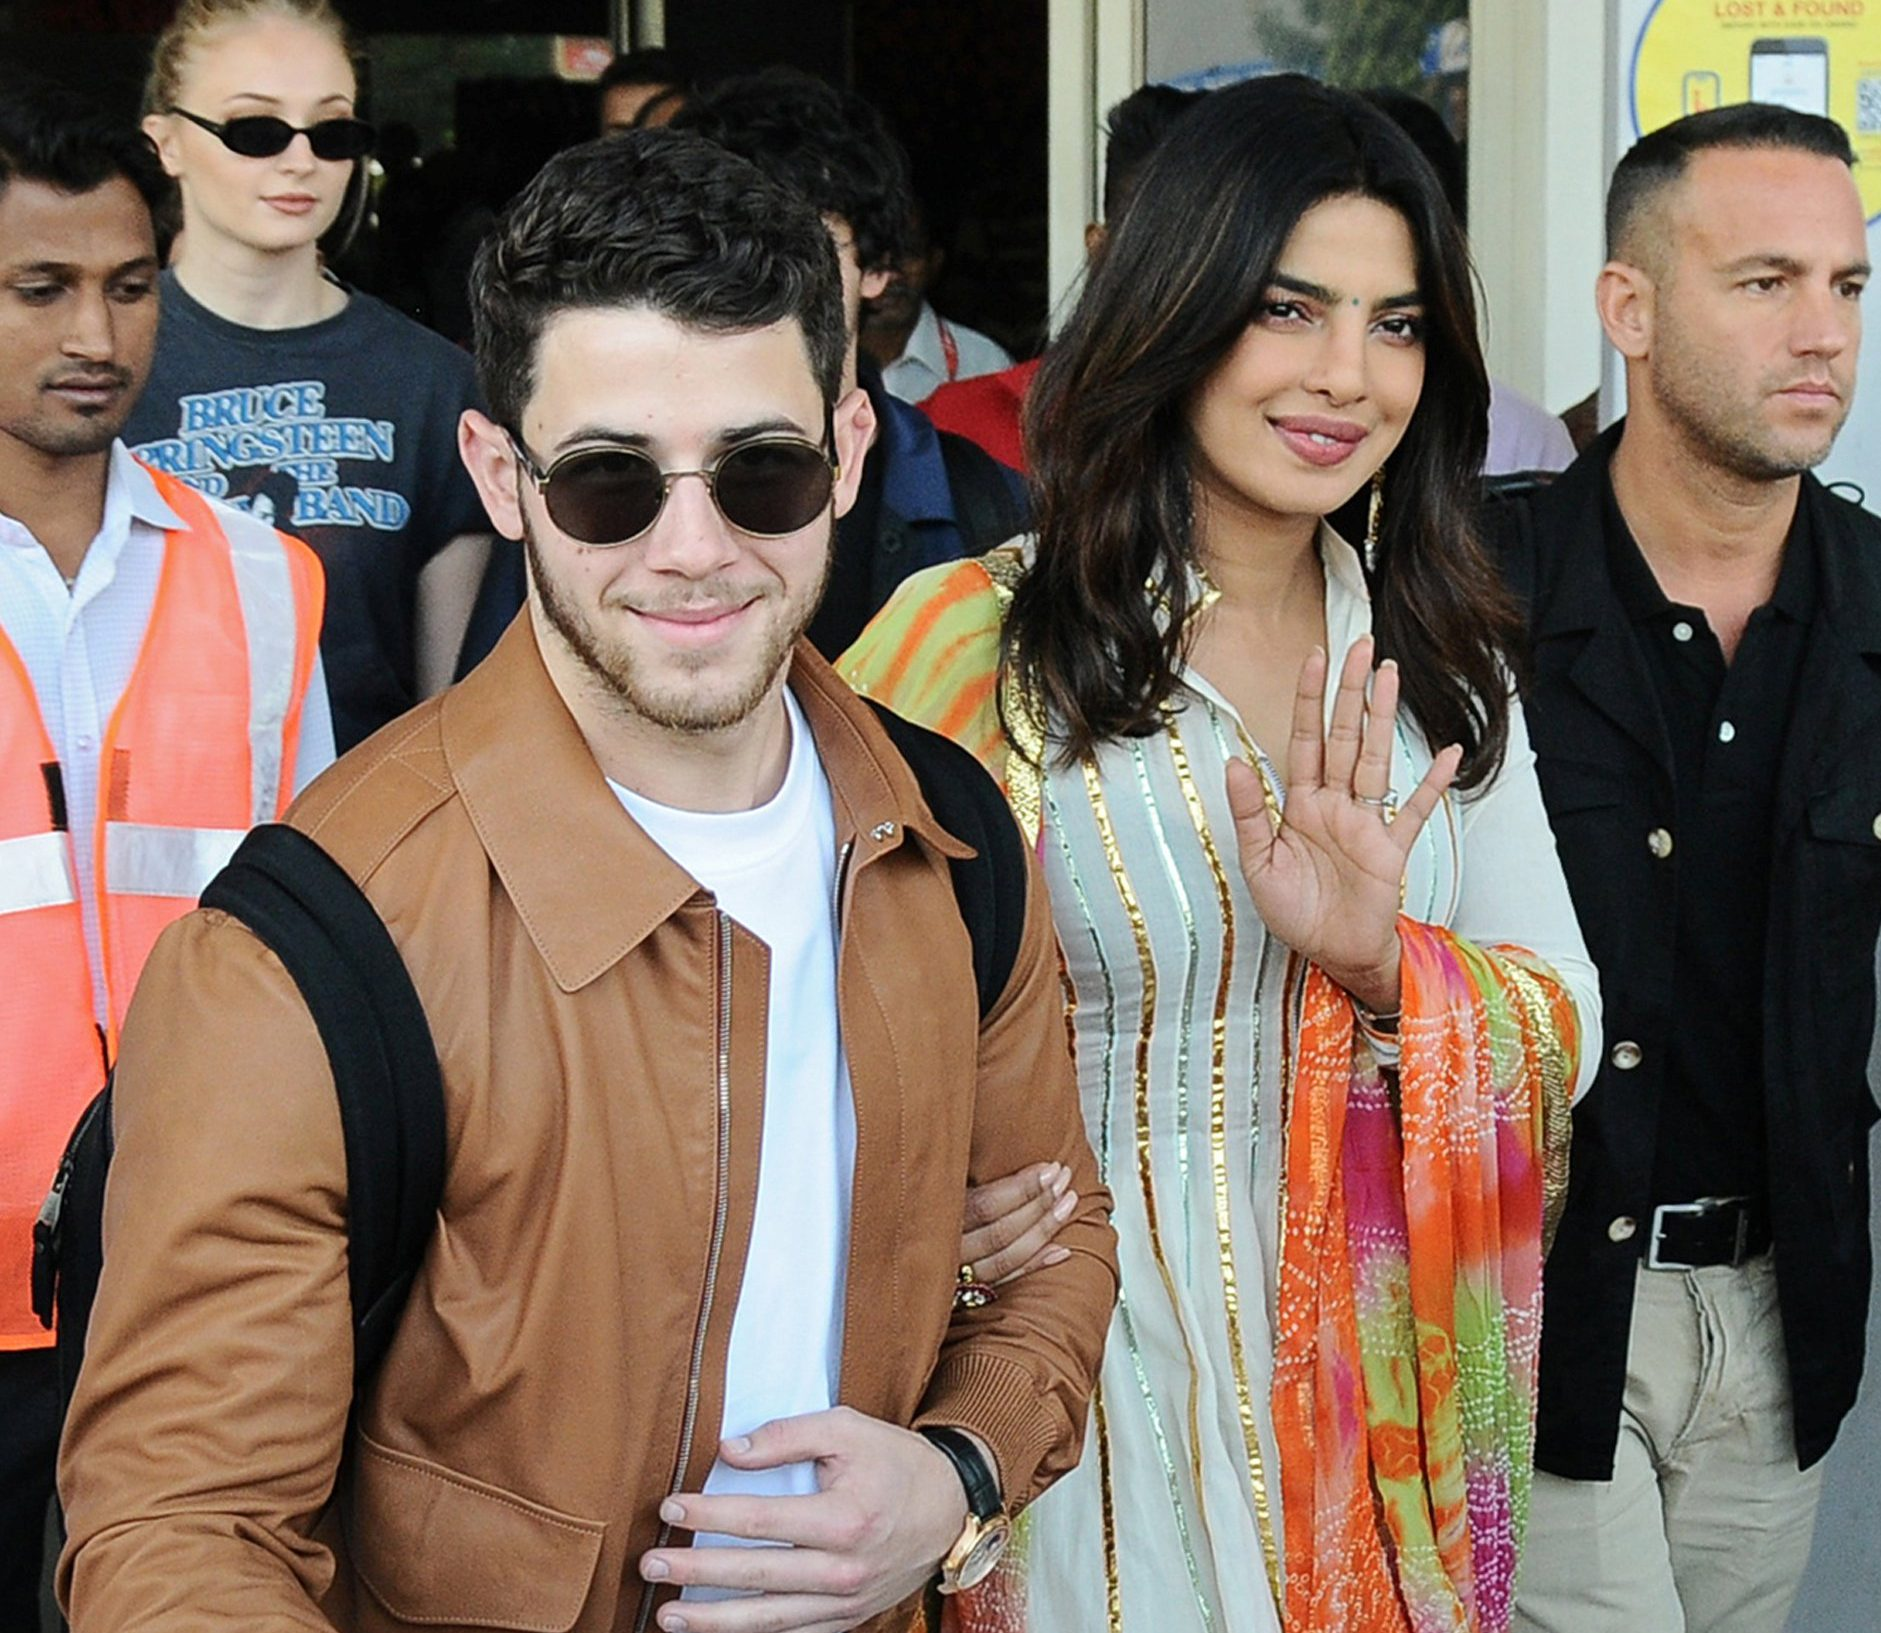 Bollywood actress Priyanka Chopra and singer Nick Jonas wave as they arrive at the airport in Jodhpur in the desert state of Rajasthan, India, November 29, 2018. REUTERS/Stringer